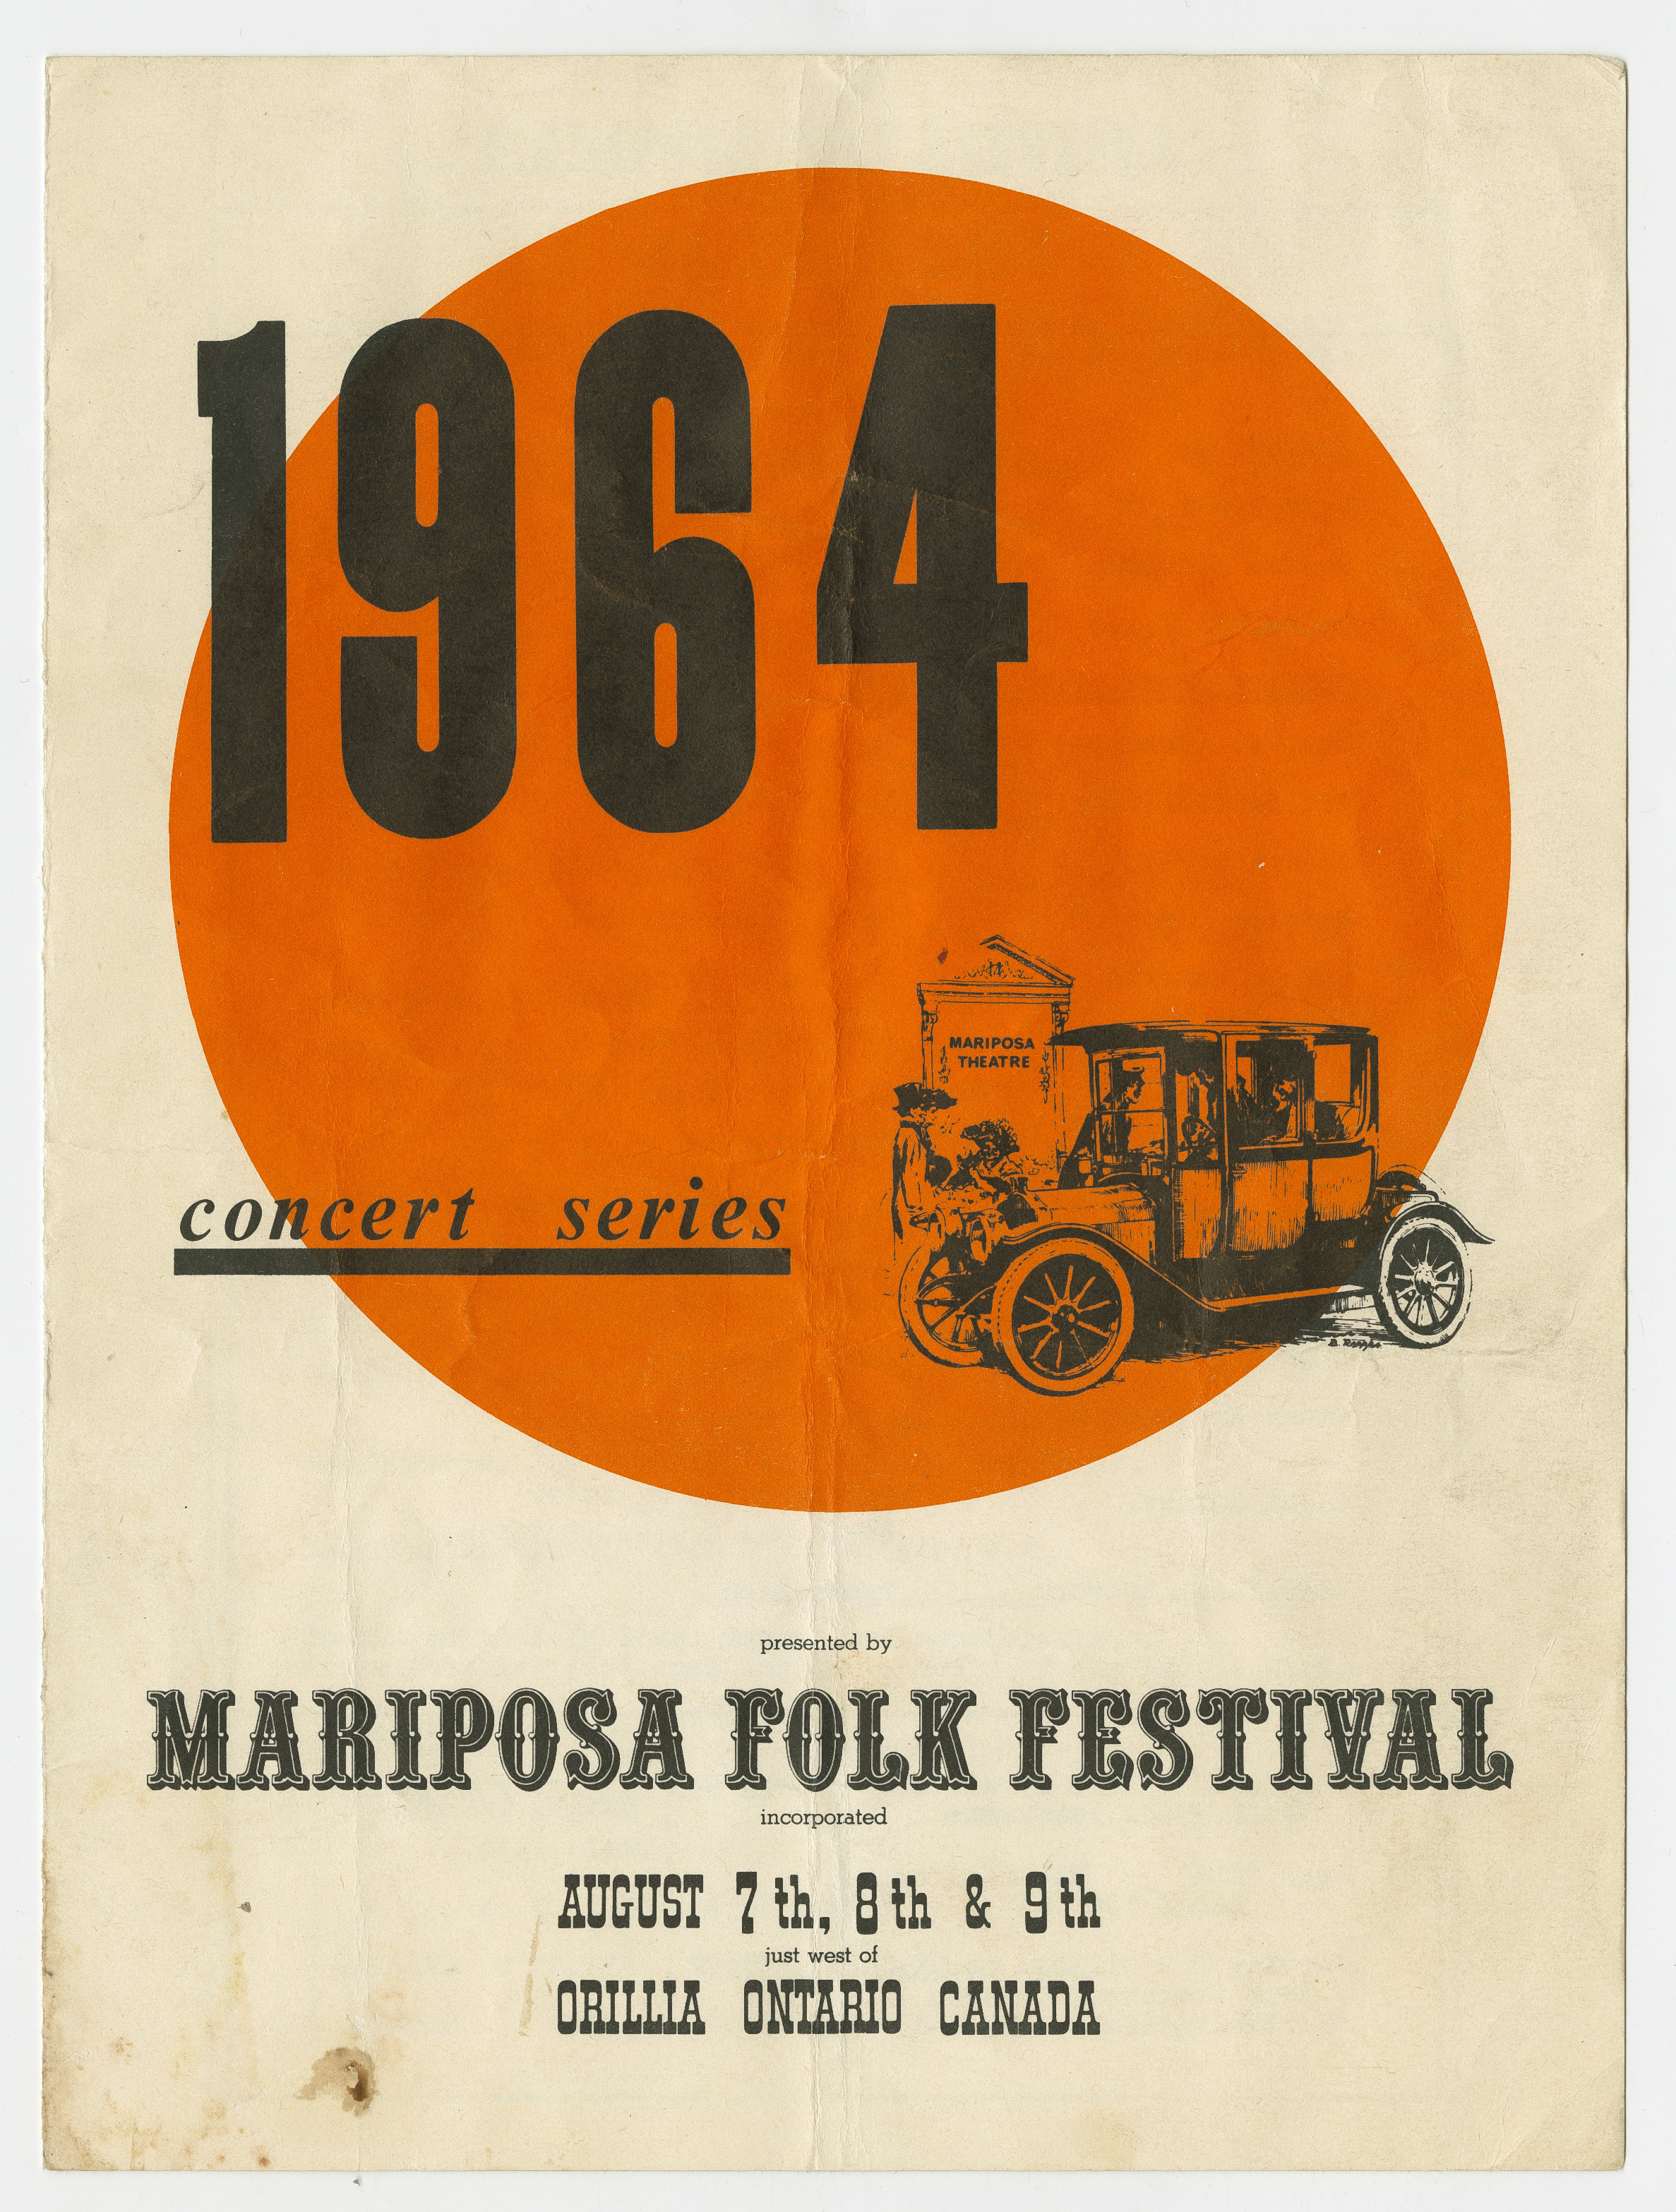 Mariposa Folk Festival 1964 program